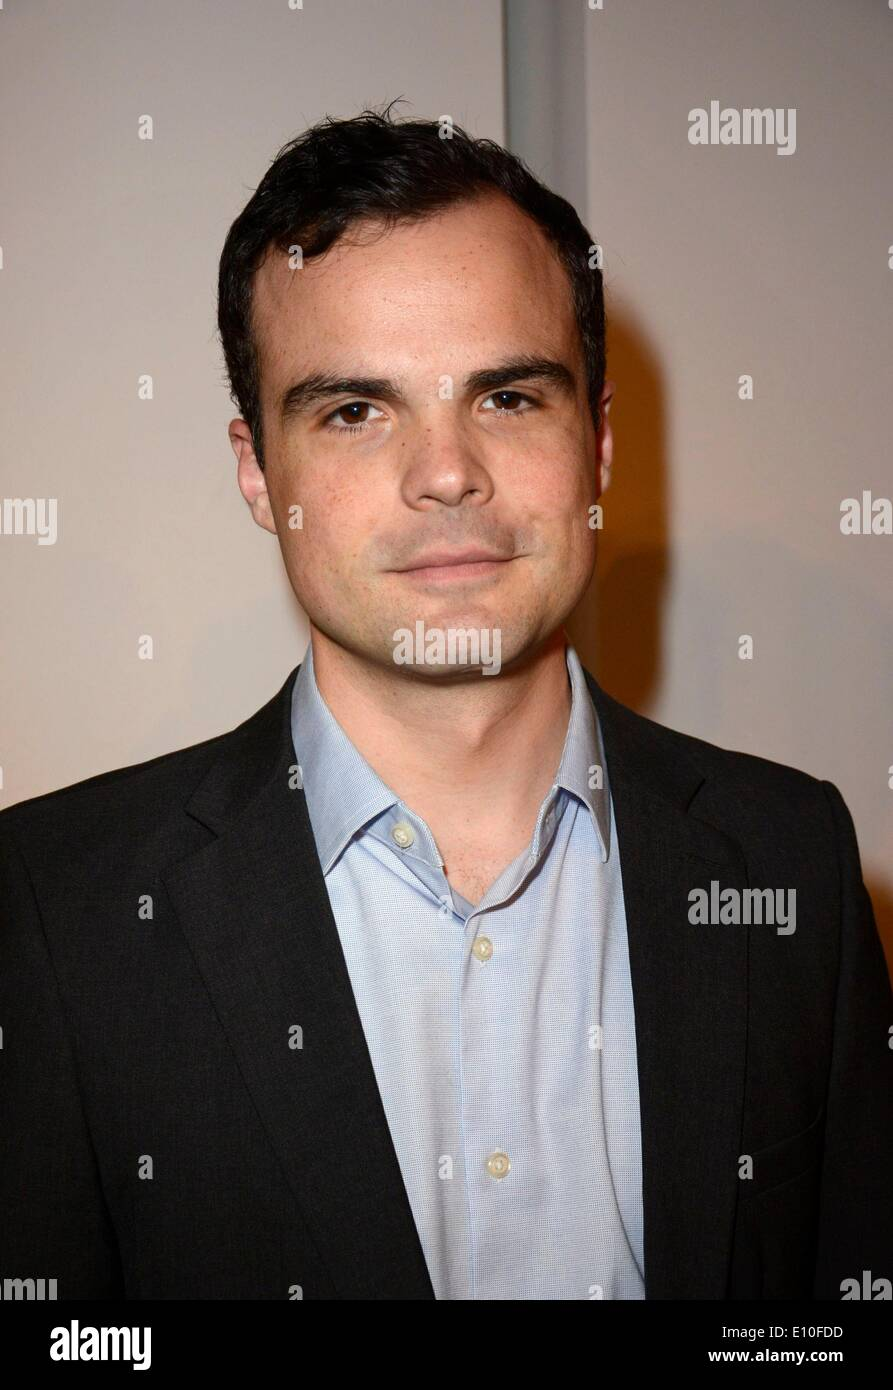 New York, NY, USA. 20th May, 2014. New York, USA. 20th May 2014. Stephen Plunkett in attendance for Private Reading of New Play HARM'S WAY, Theater Lab, New York, NY May 20, 2014. Credit:  Derek Storm/Everett Collection/Alamy Live News/Alamy Live News - Stock Image